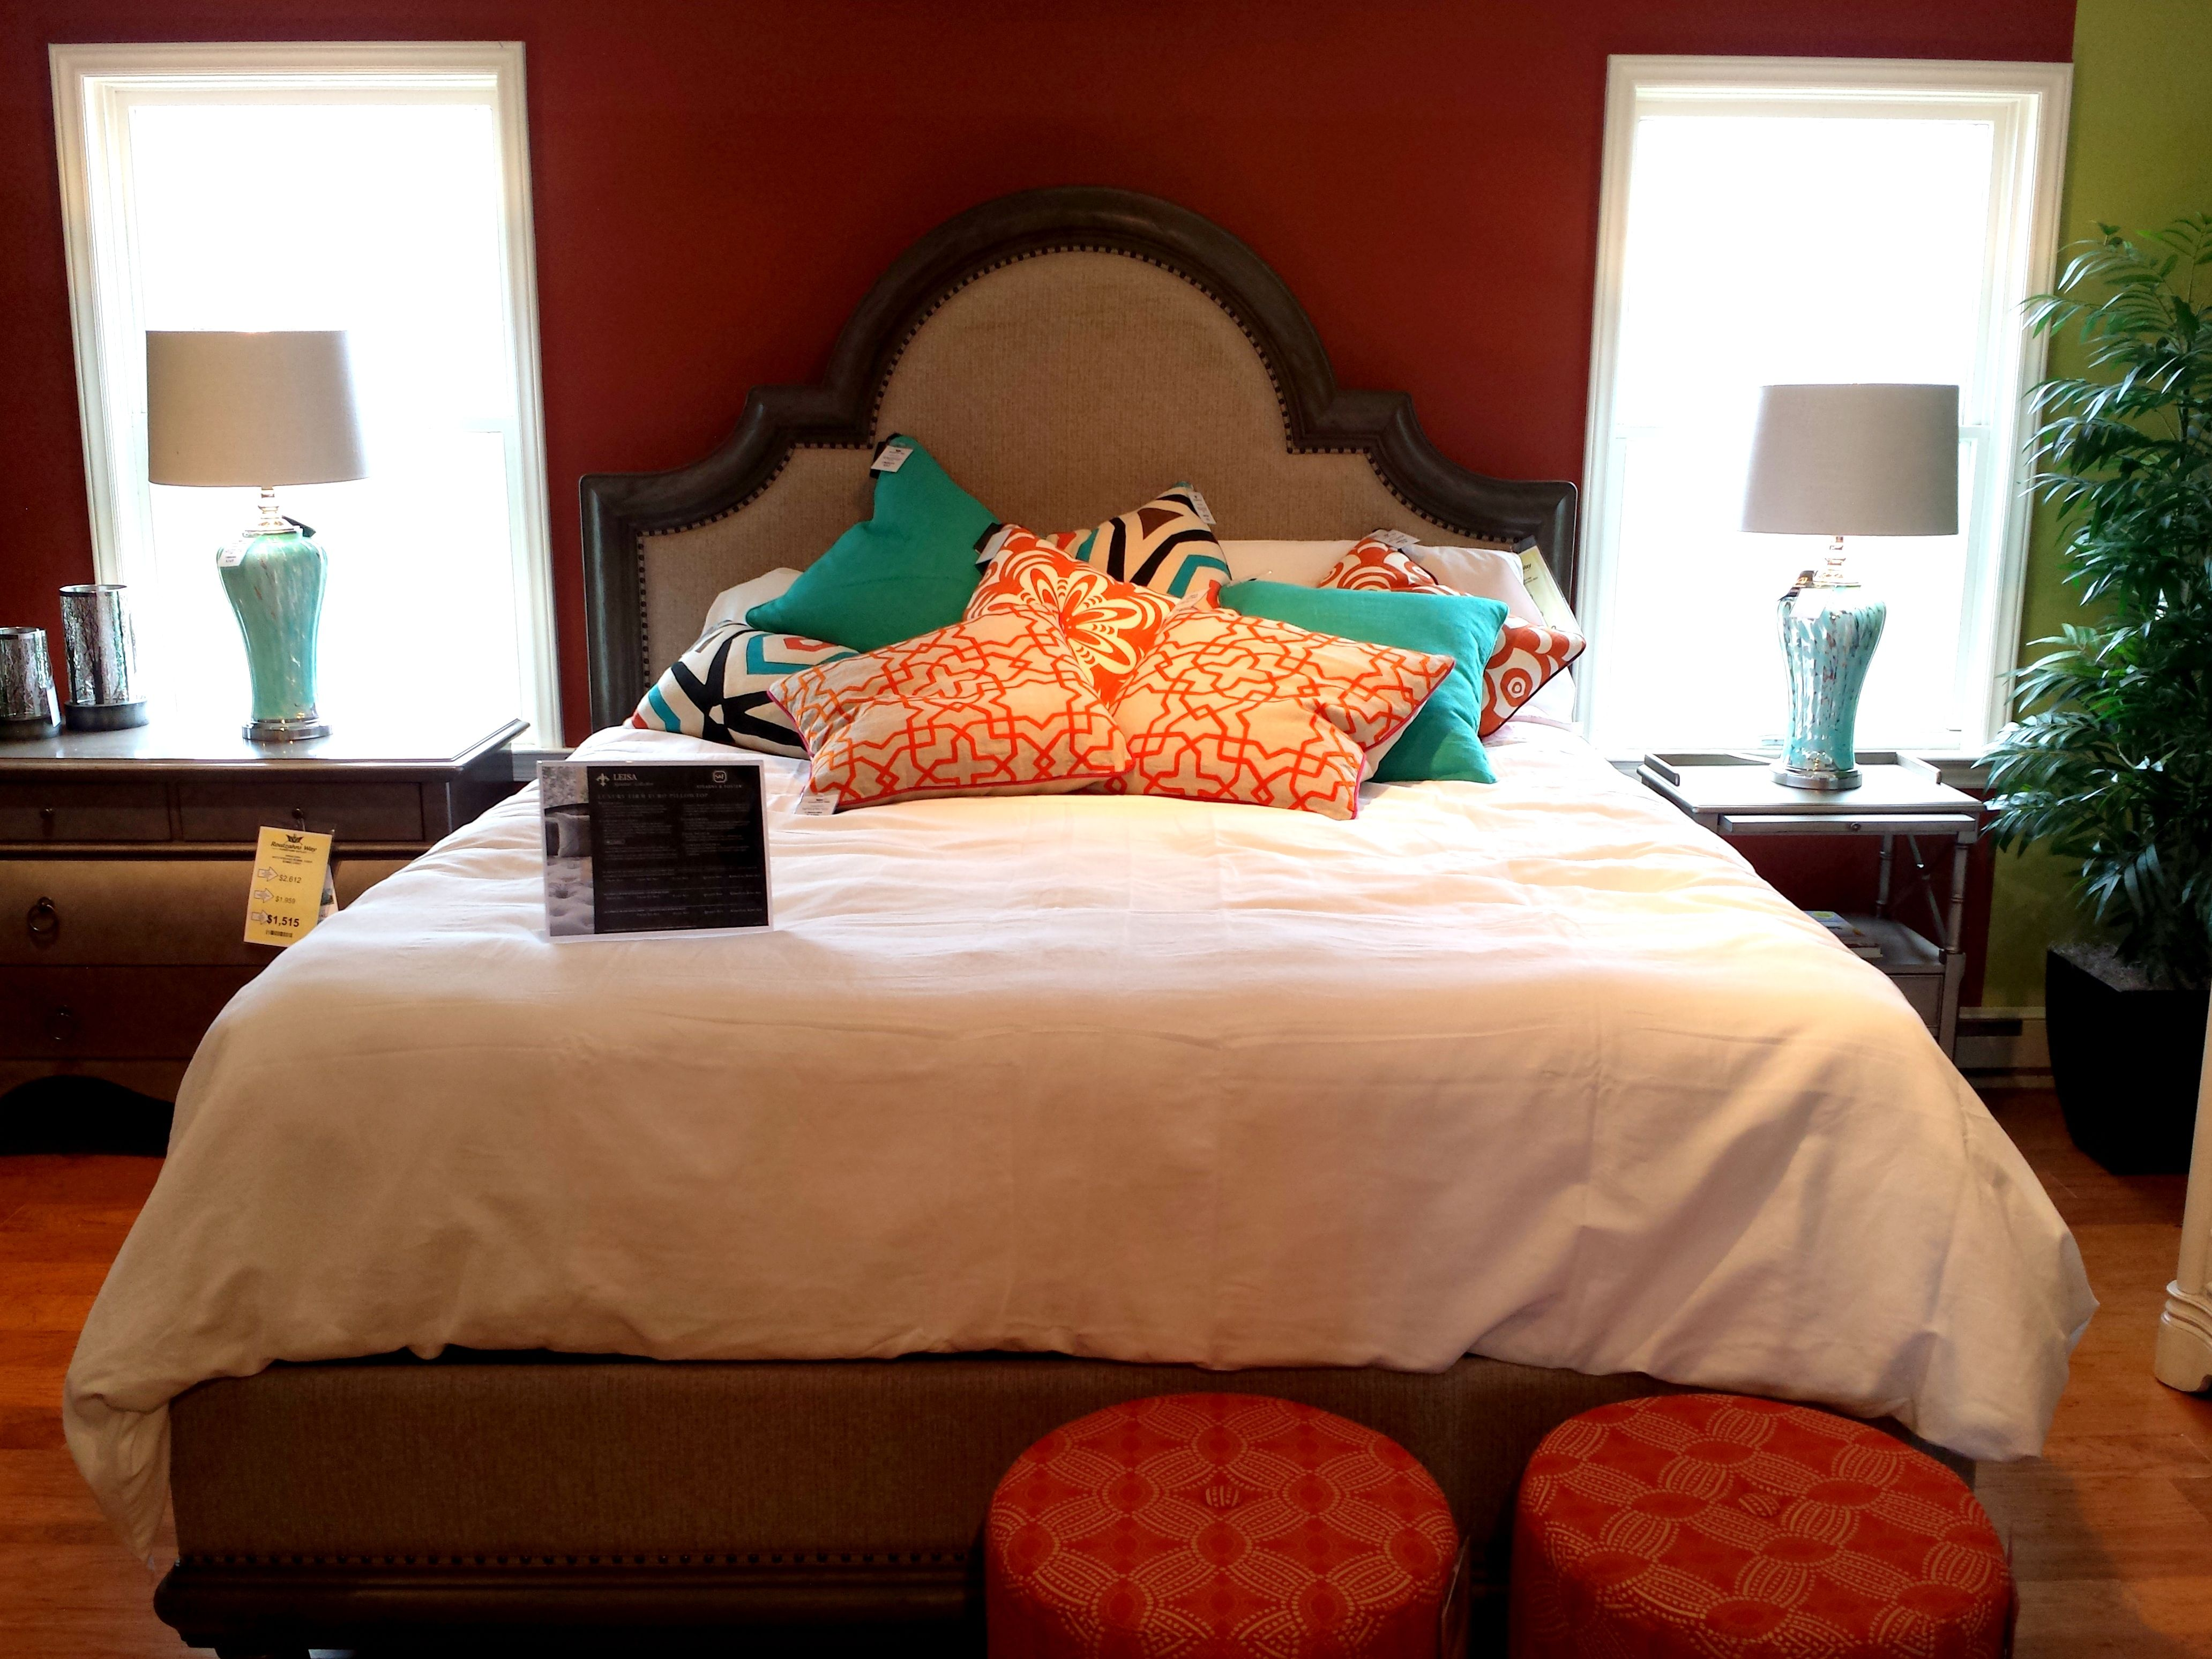 HGTV Home Furniture Collection Bedroom; Caravan Panel Bed With Upholstered  Headboard And Nail Head Trim